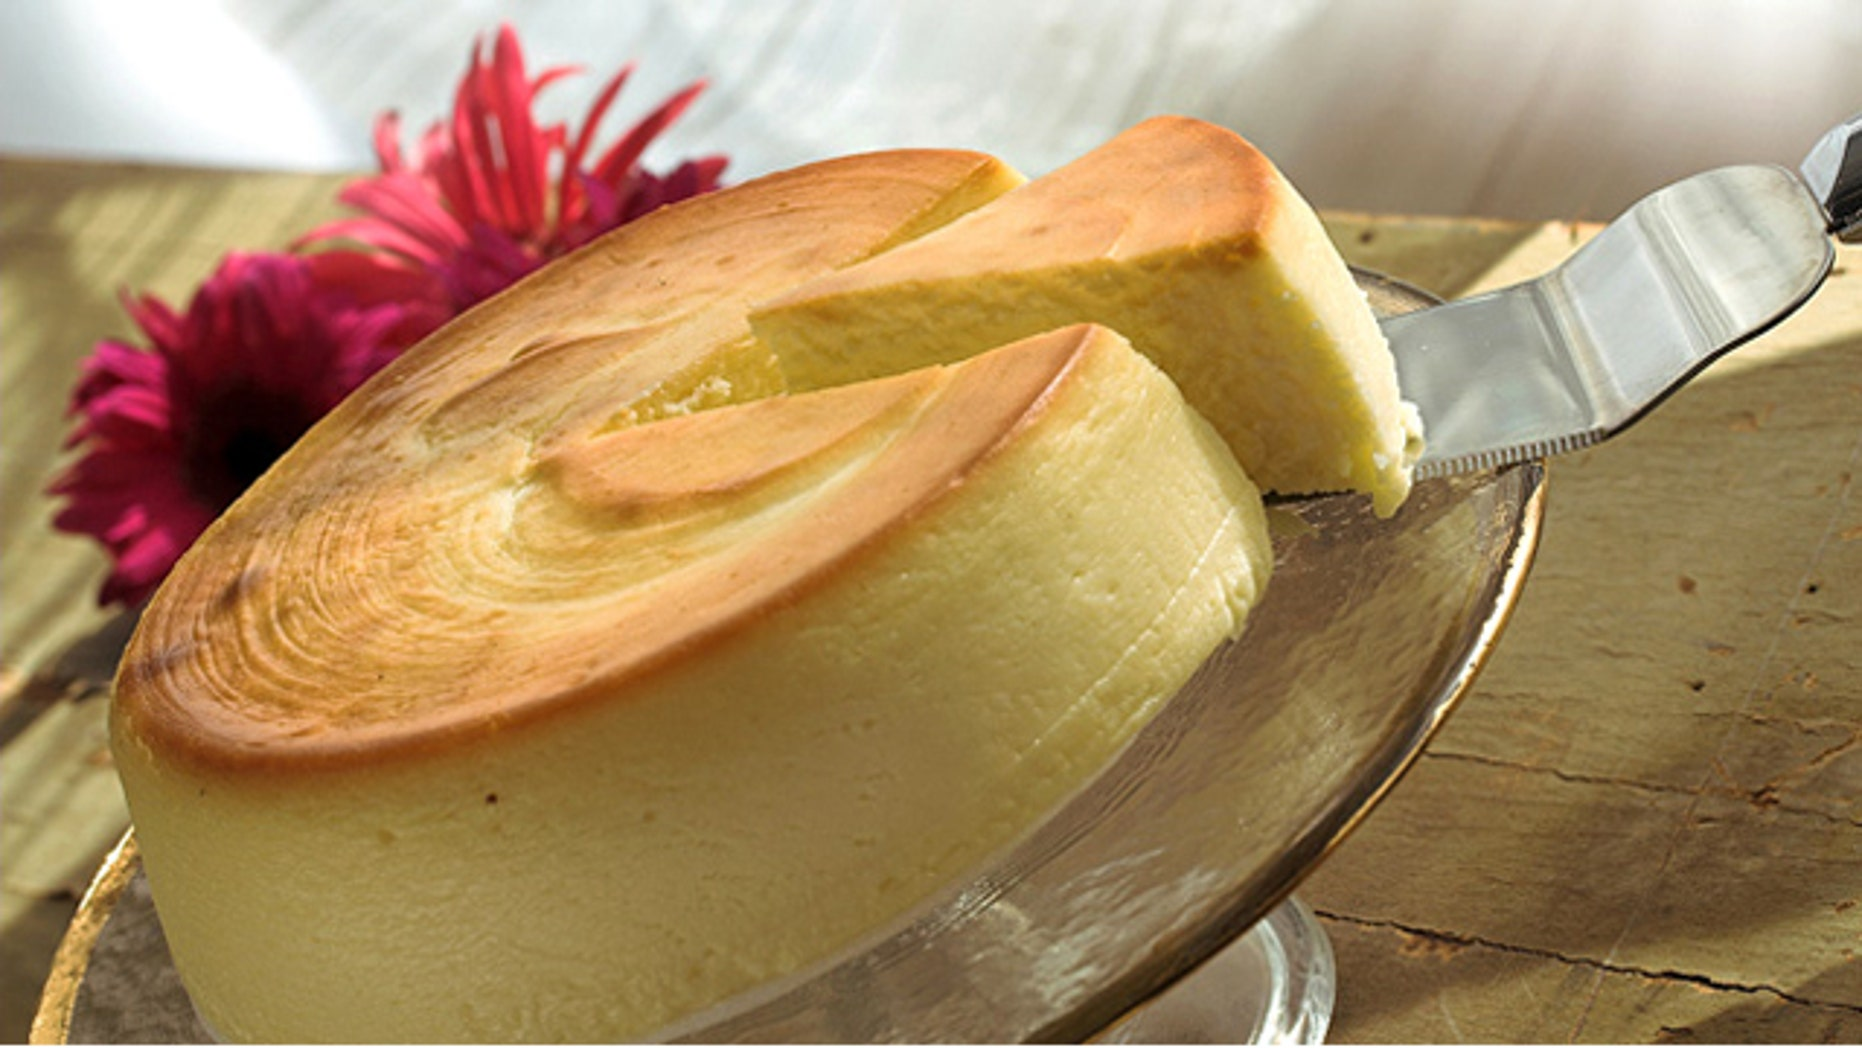 Curd cheesecakes - the joy of children 83